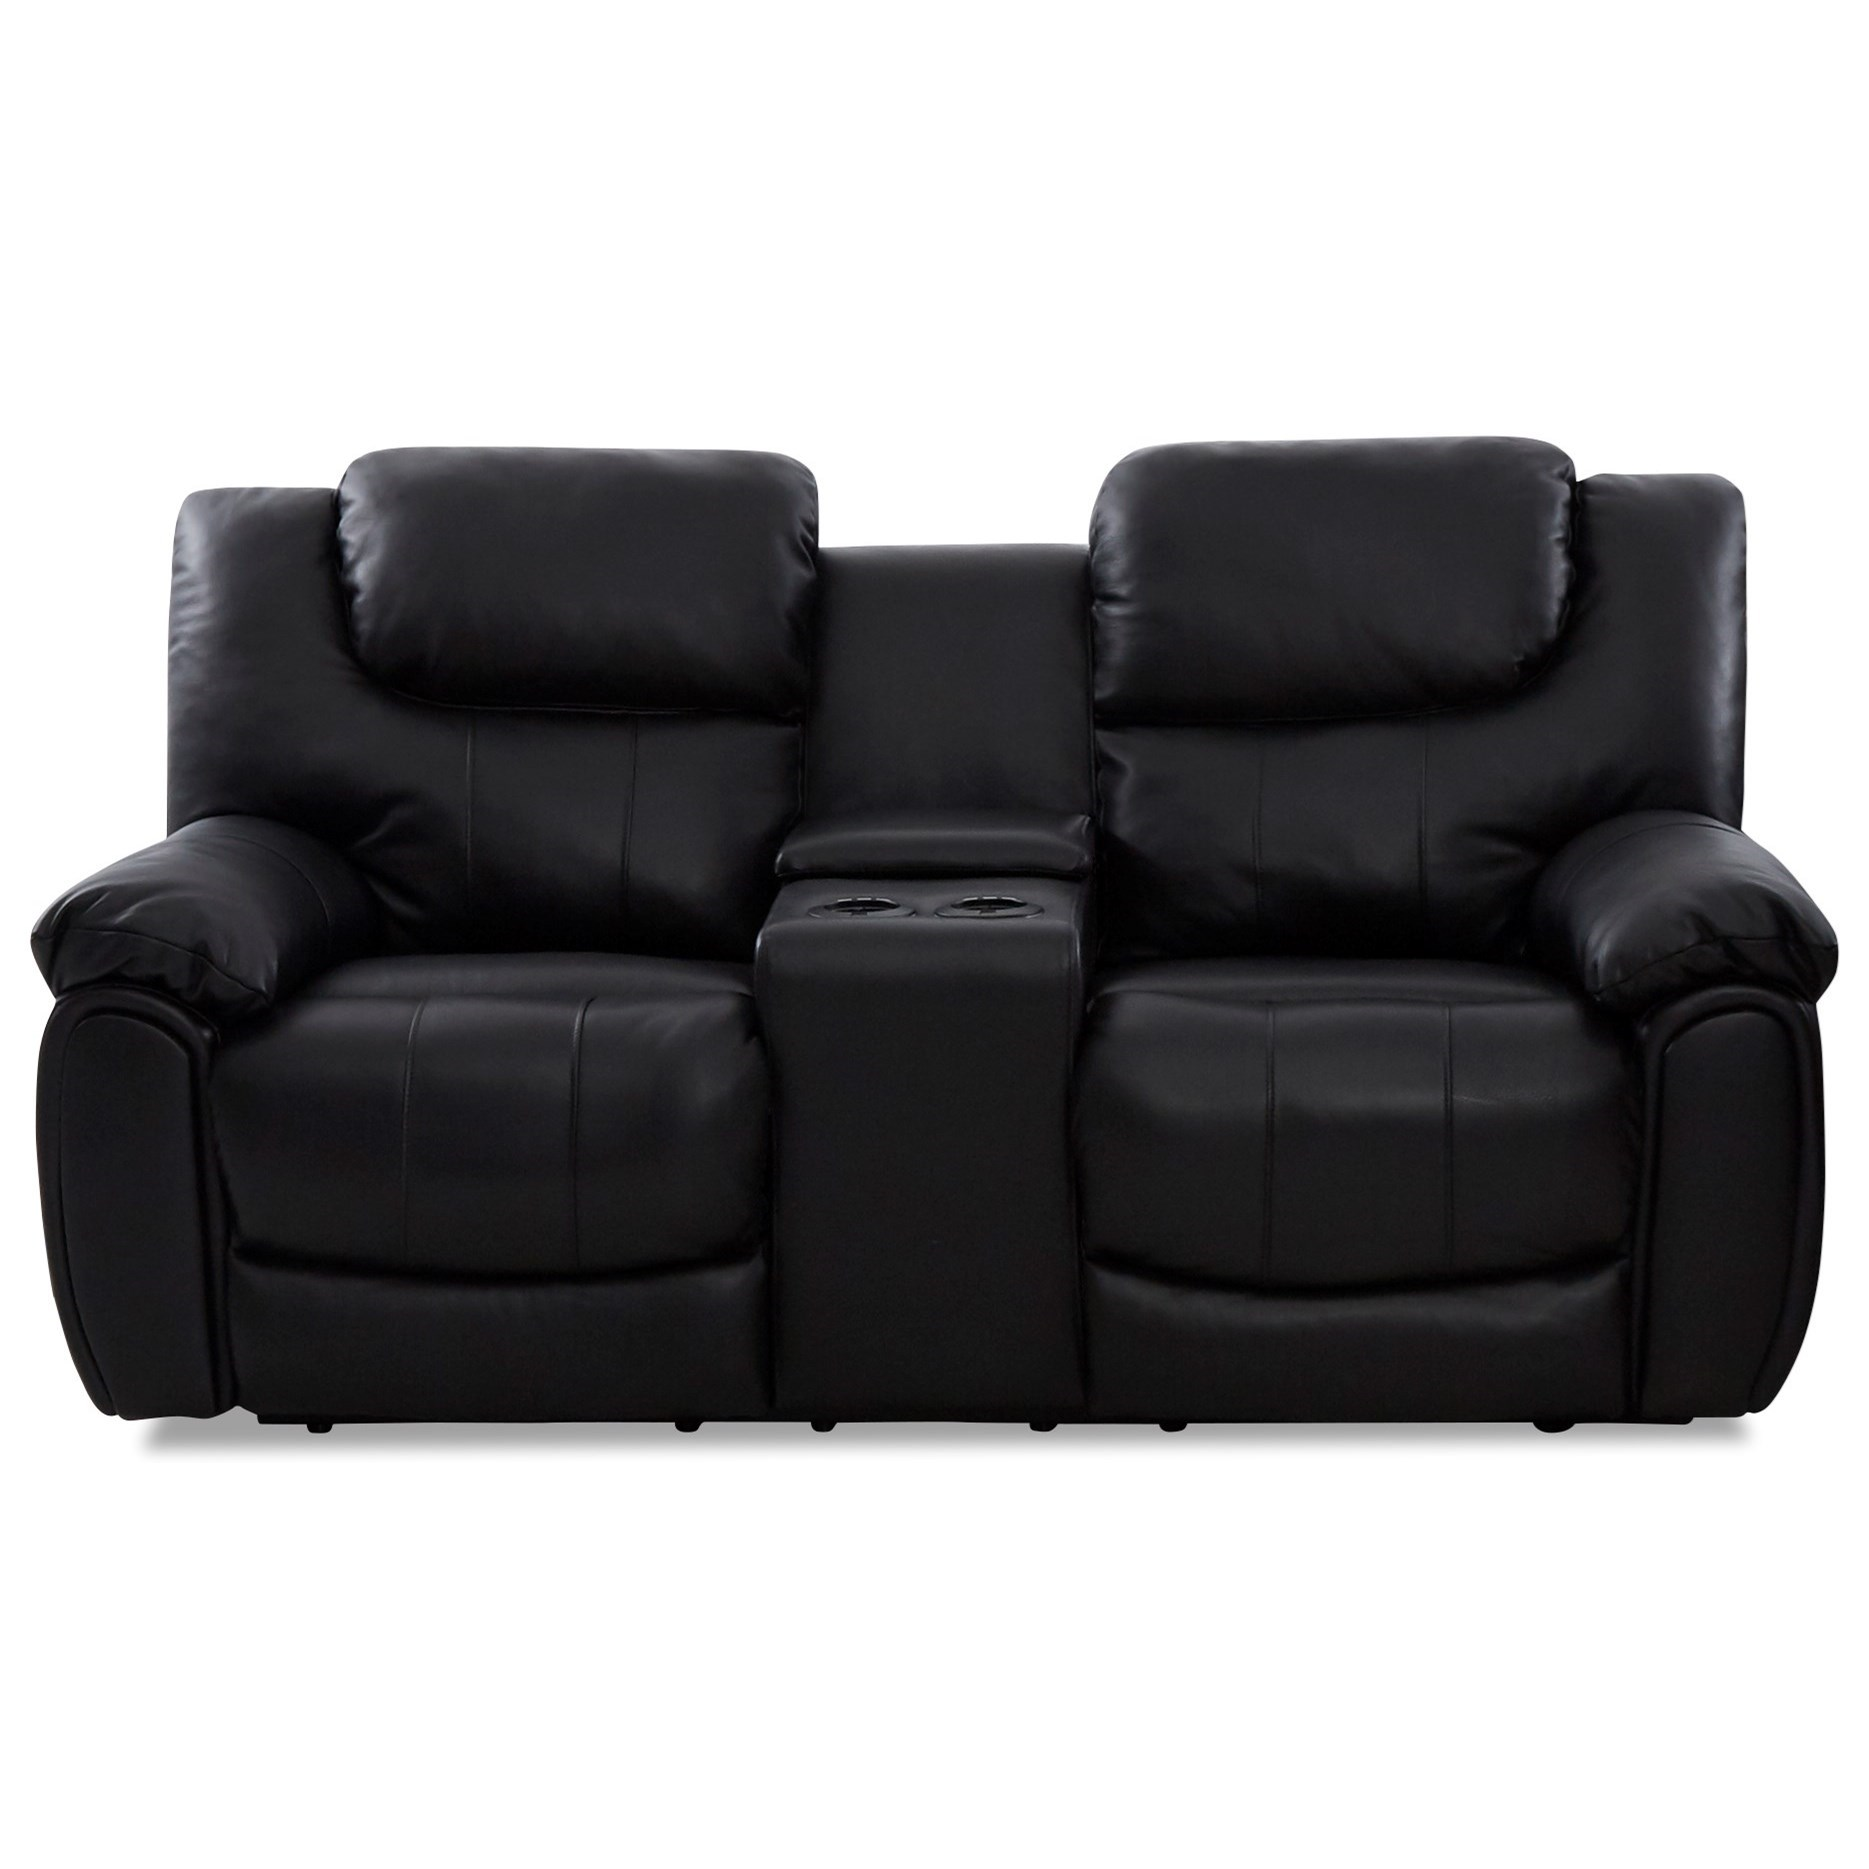 Casual Power Reclining Loveseat with Cupholder Storage and USB Charging Ports